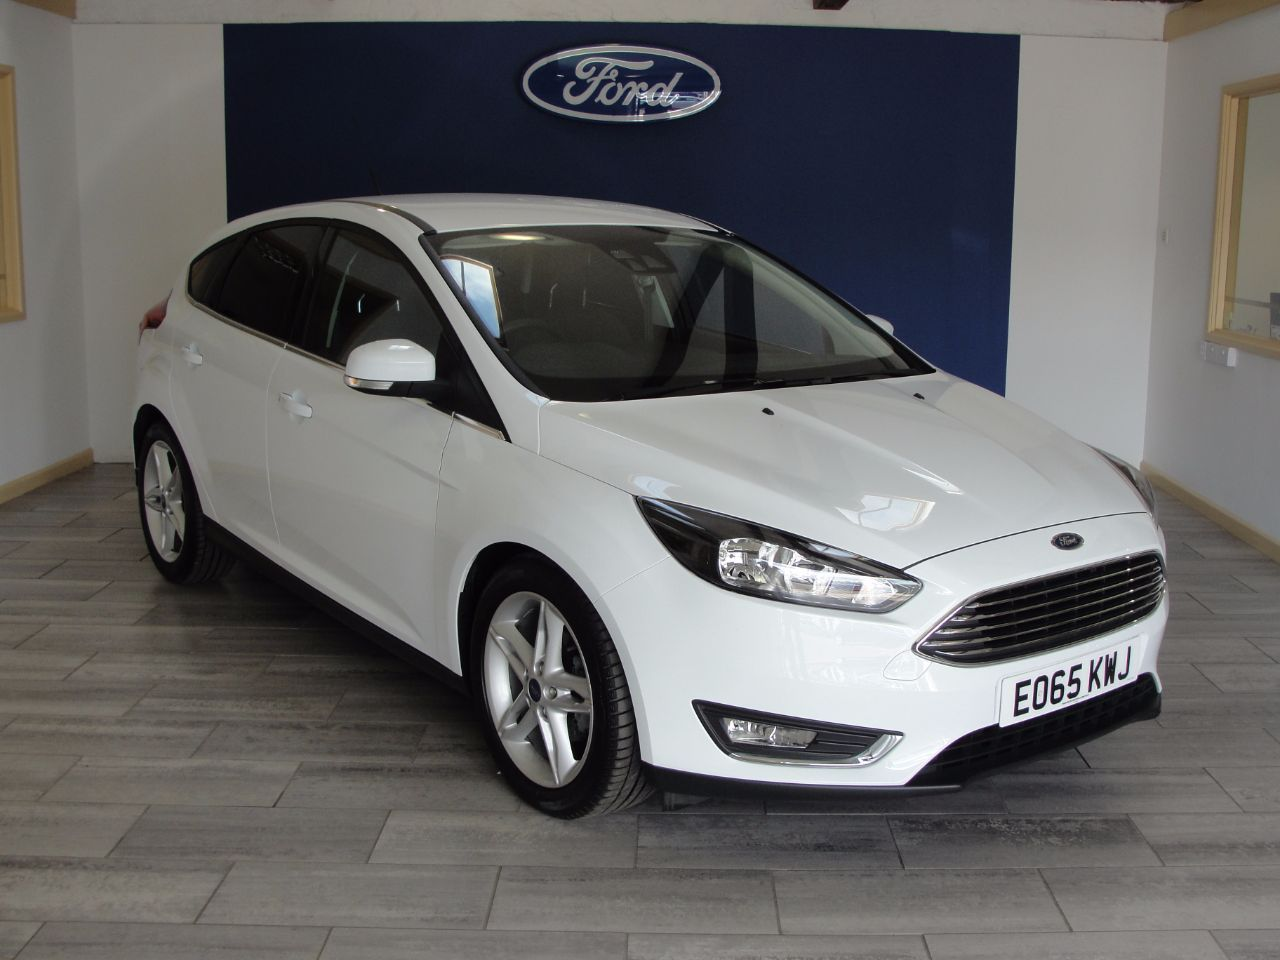 Used Ford Focus 1 0 Ecoboost 125 Titanium 5dr For Sale In Newton